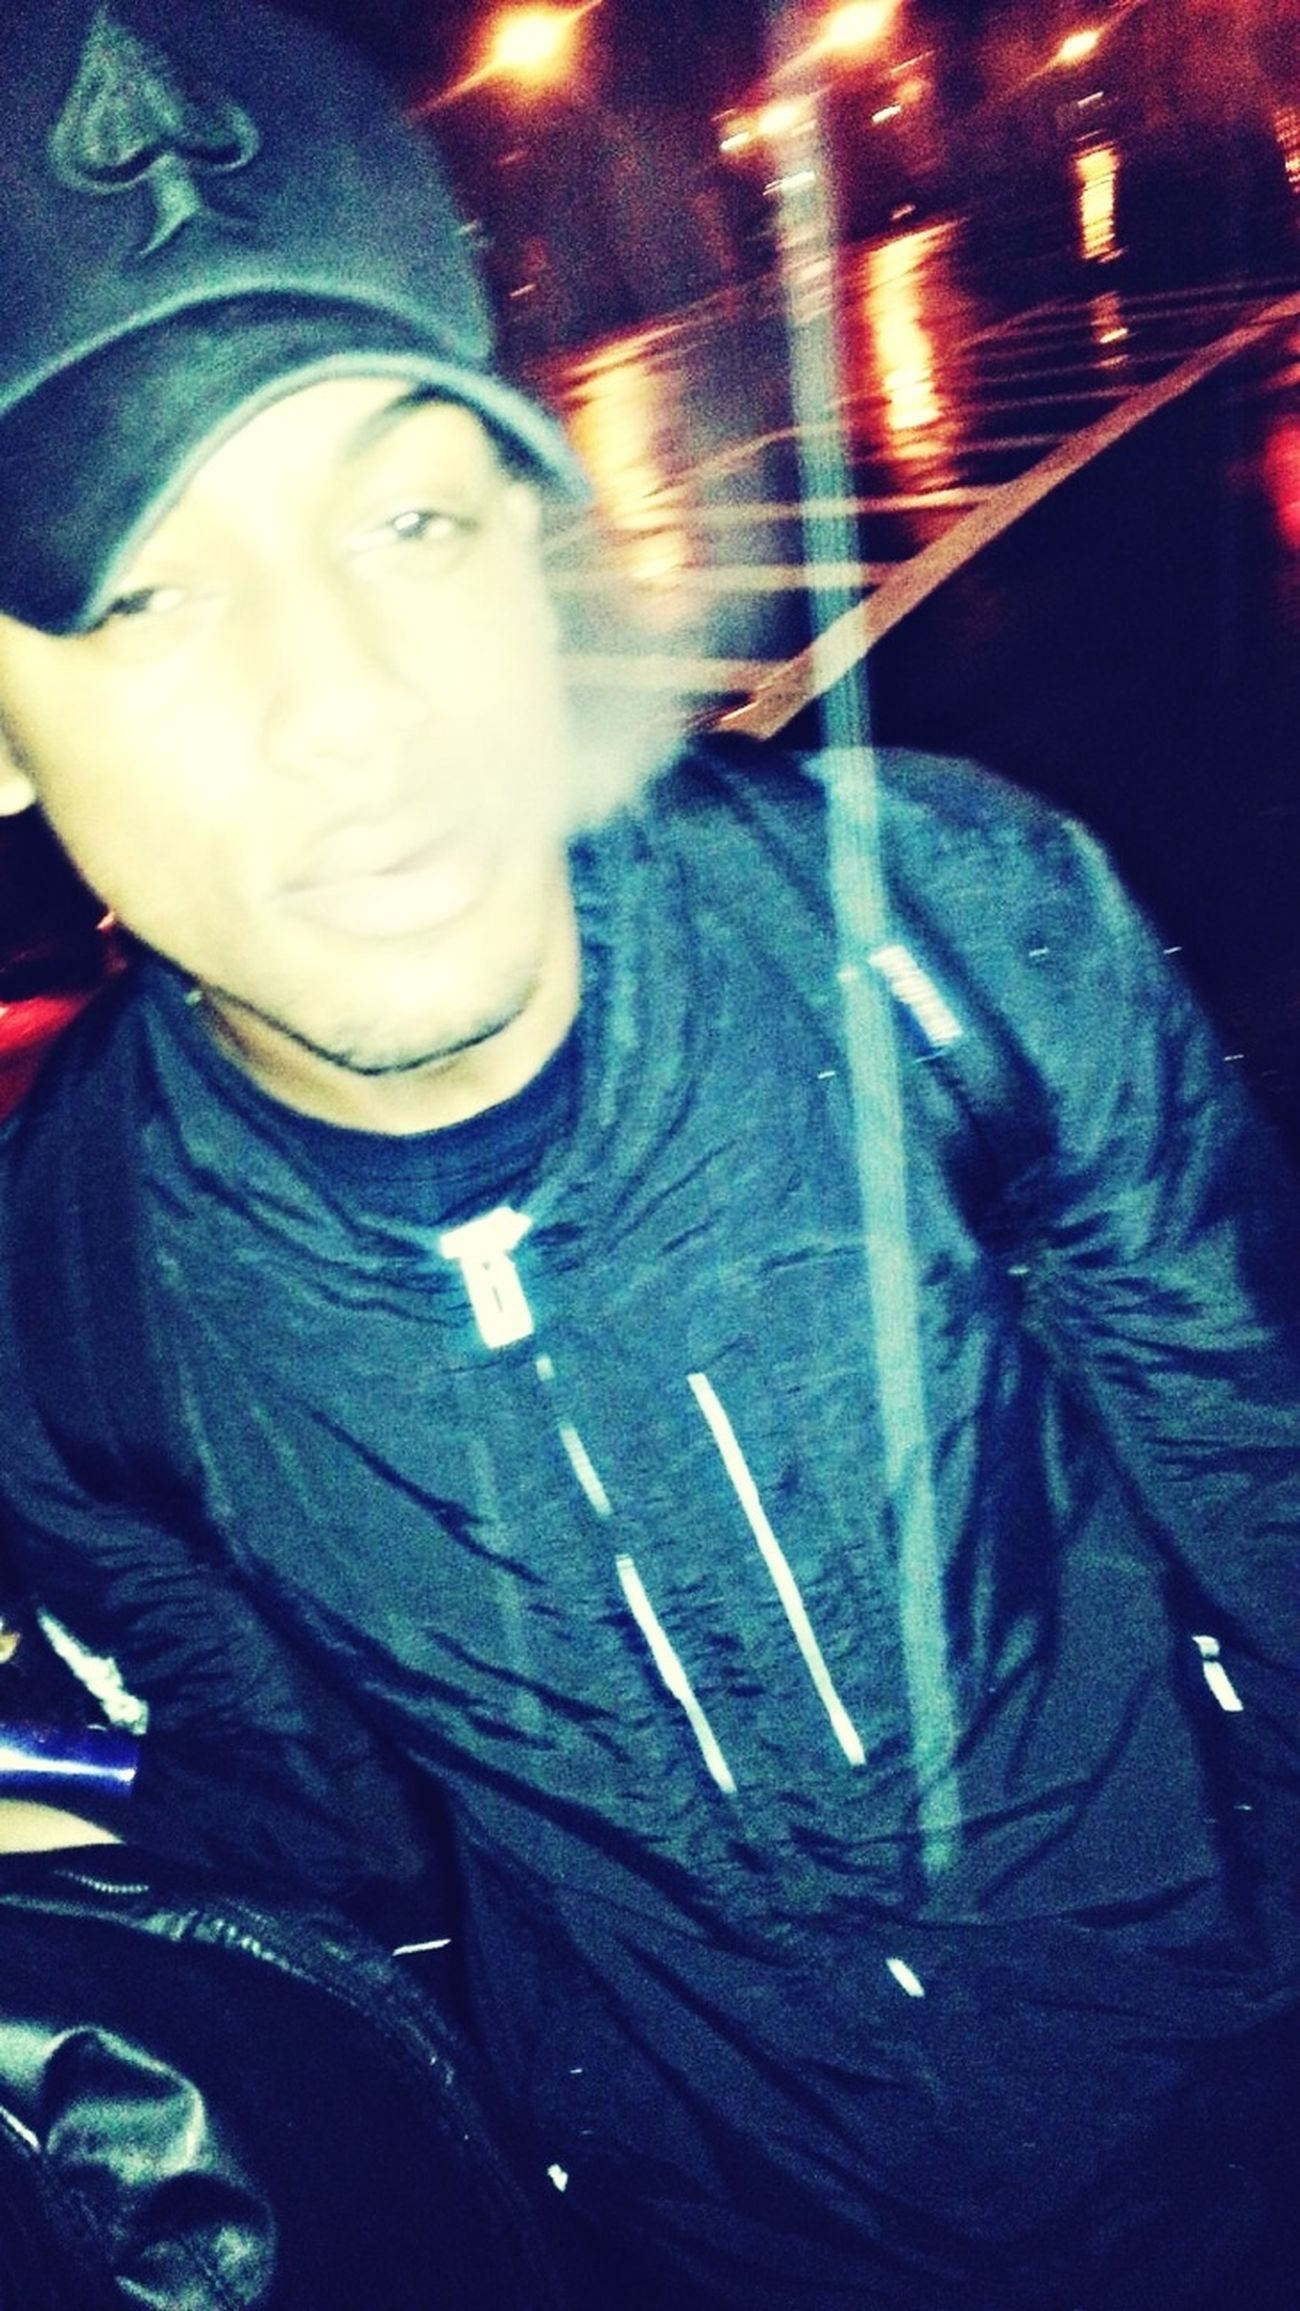 On My Way Home All I C Is Smoke